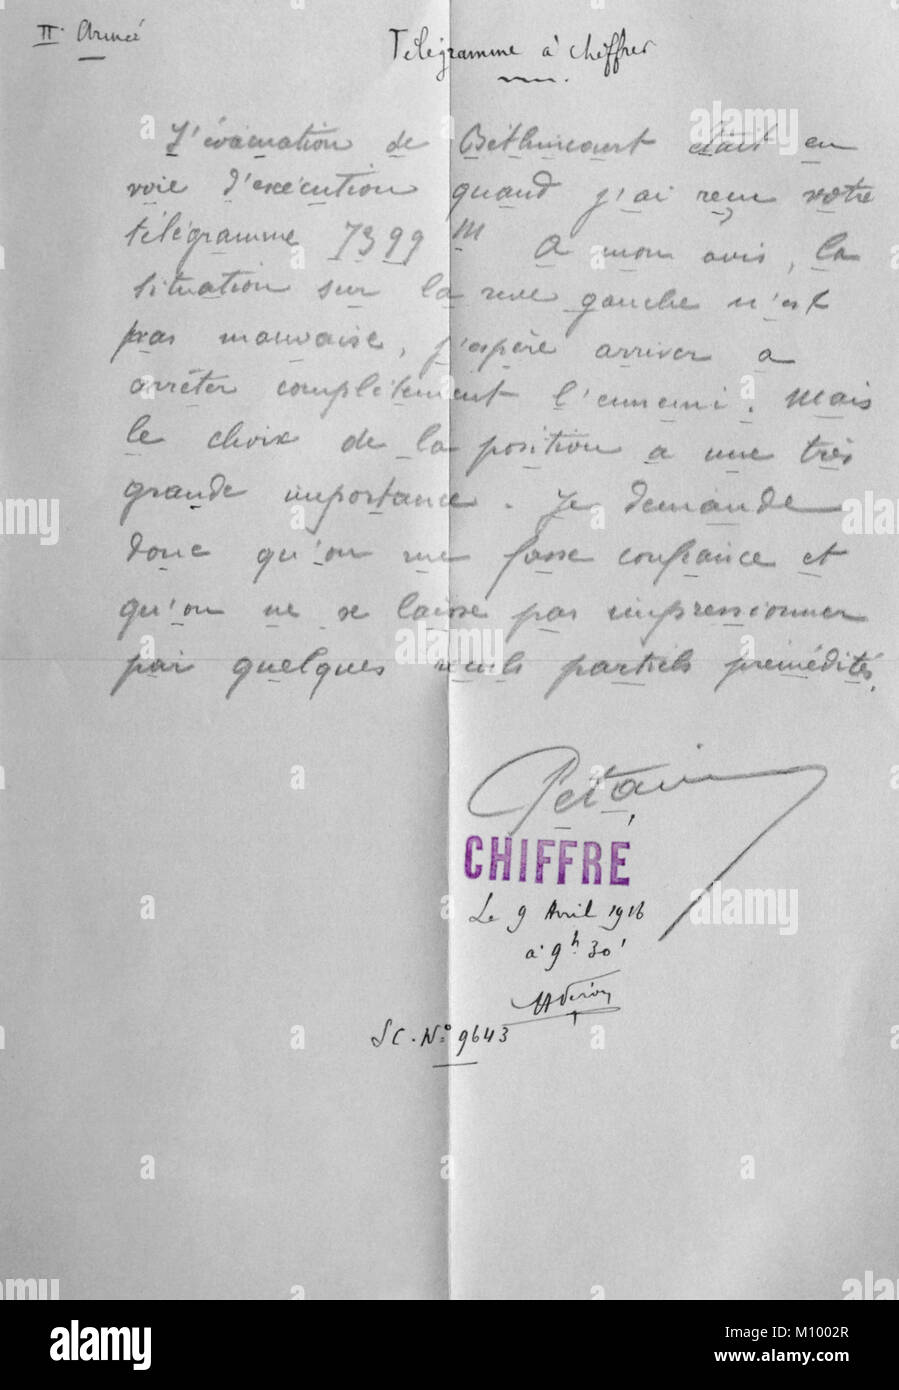 Copy of a telegram to be coded sent by Maréchal Pétain during WW1 (1916), encouraging forces on the left - Stock Image